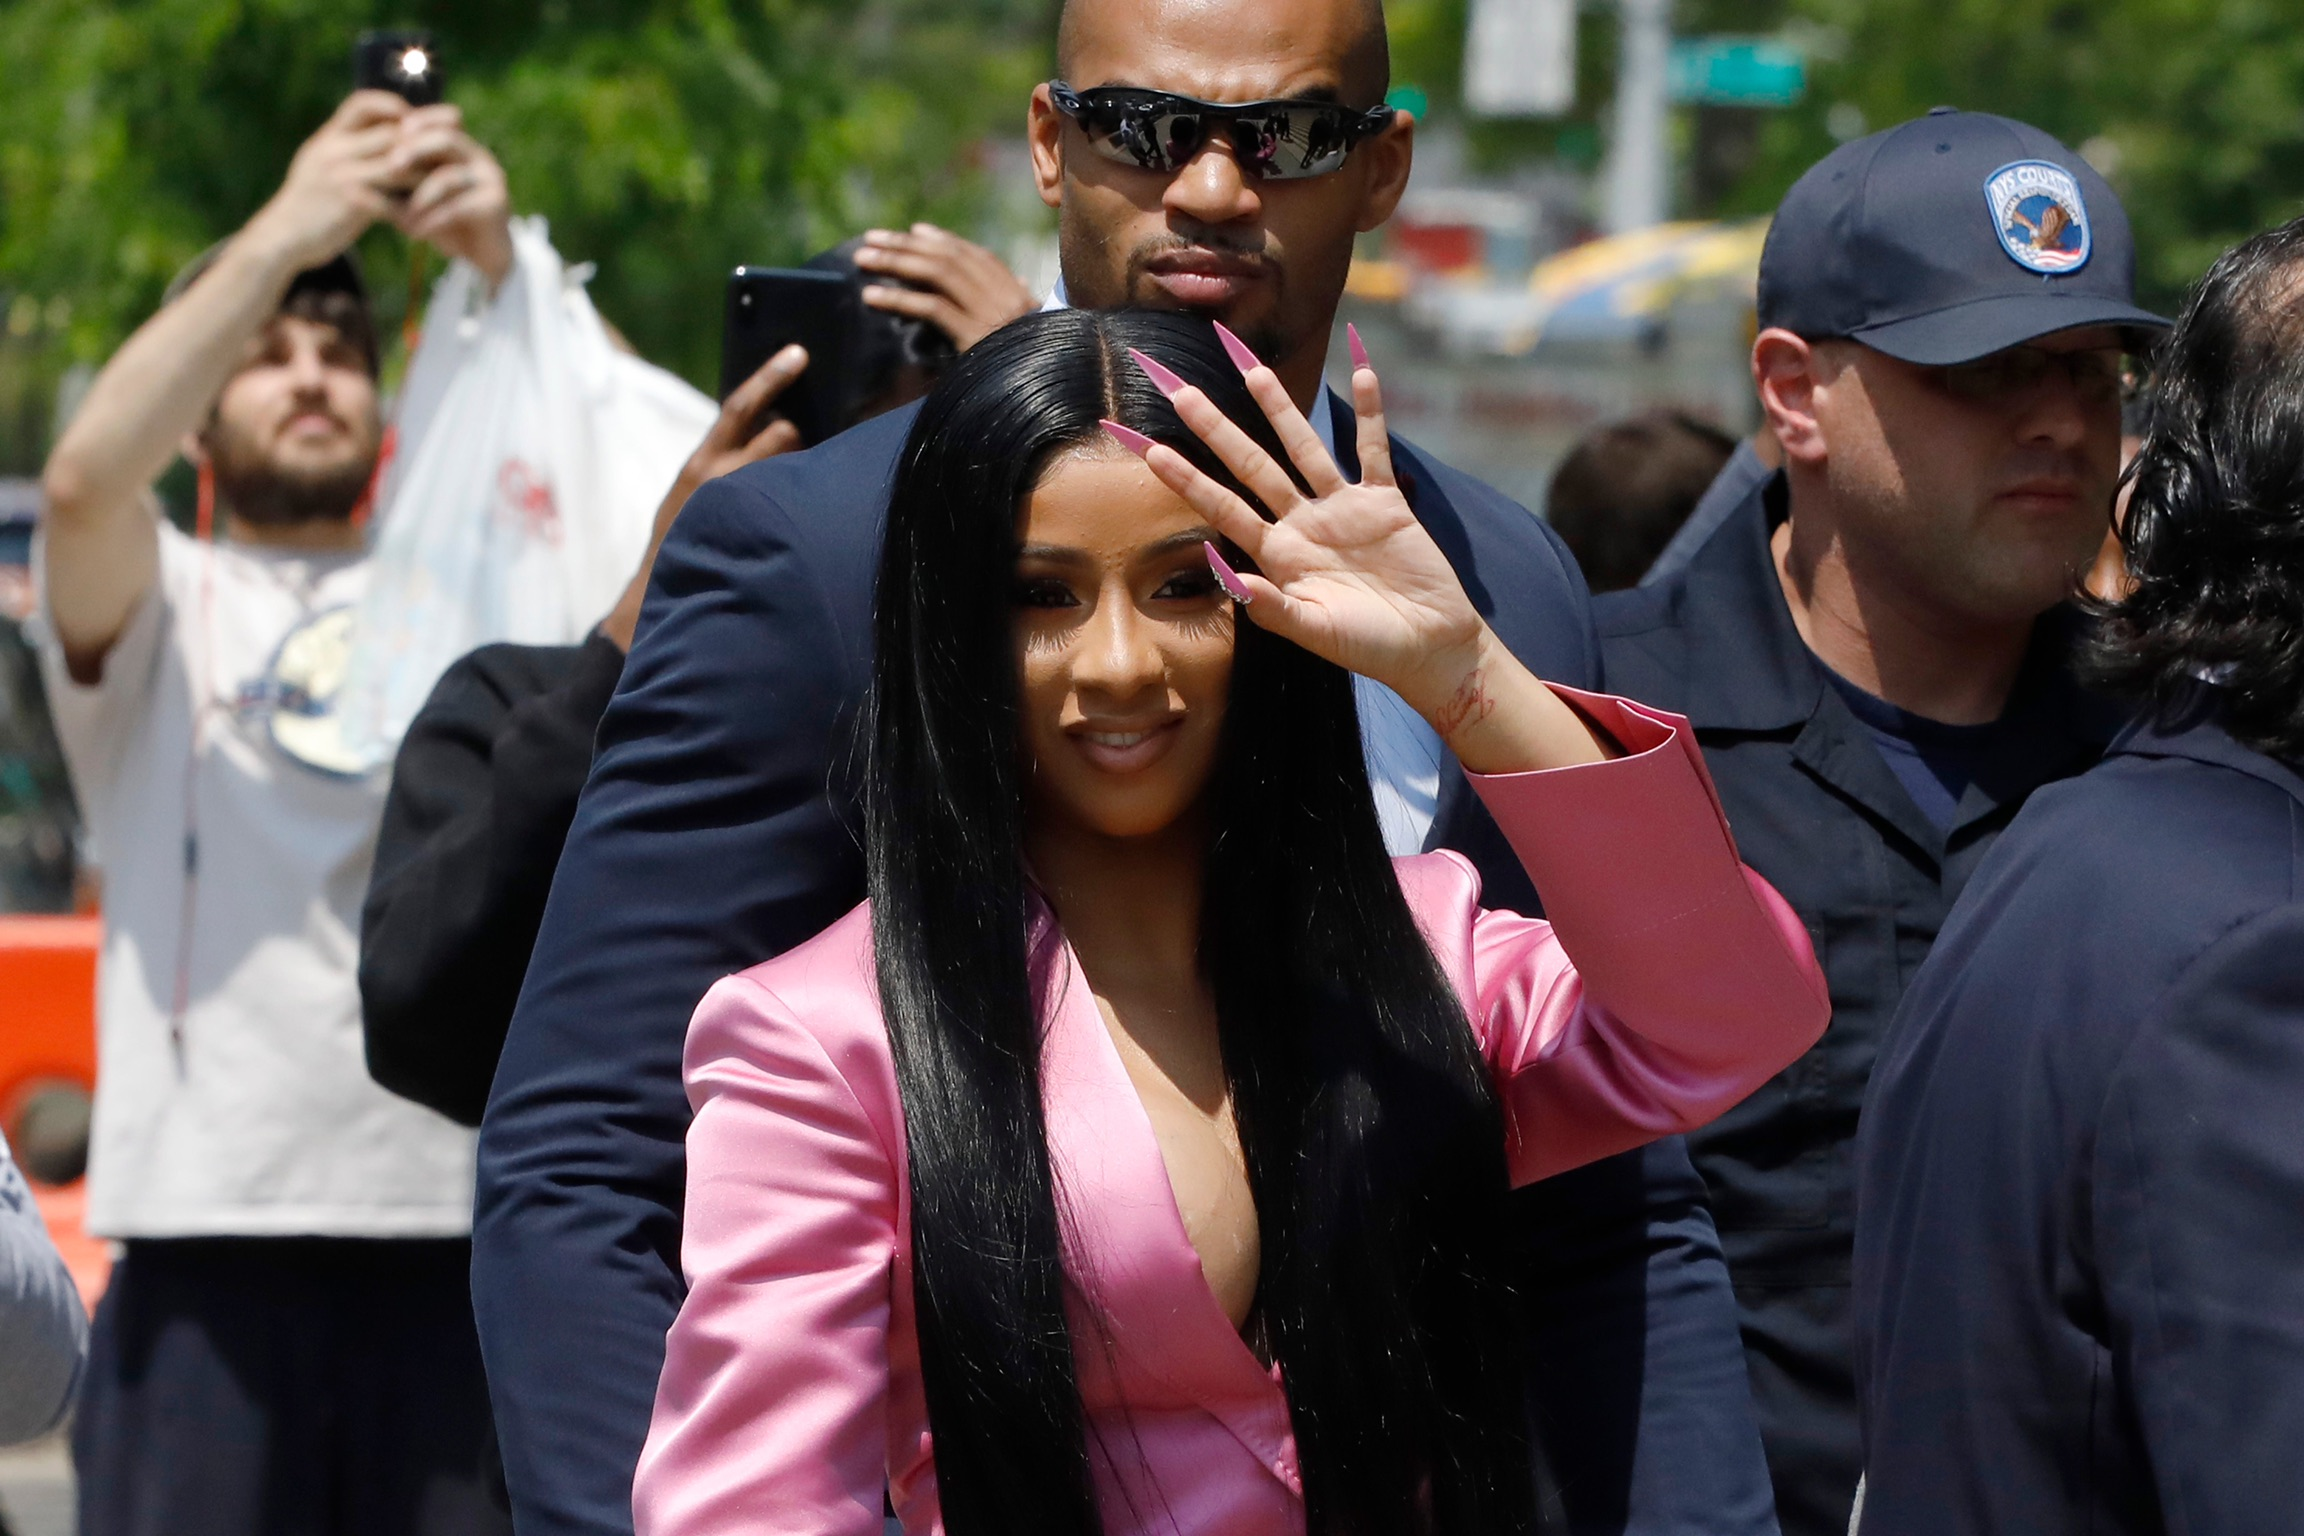 Cardi B indicted by grand jury in NY in connection with strip club brawl